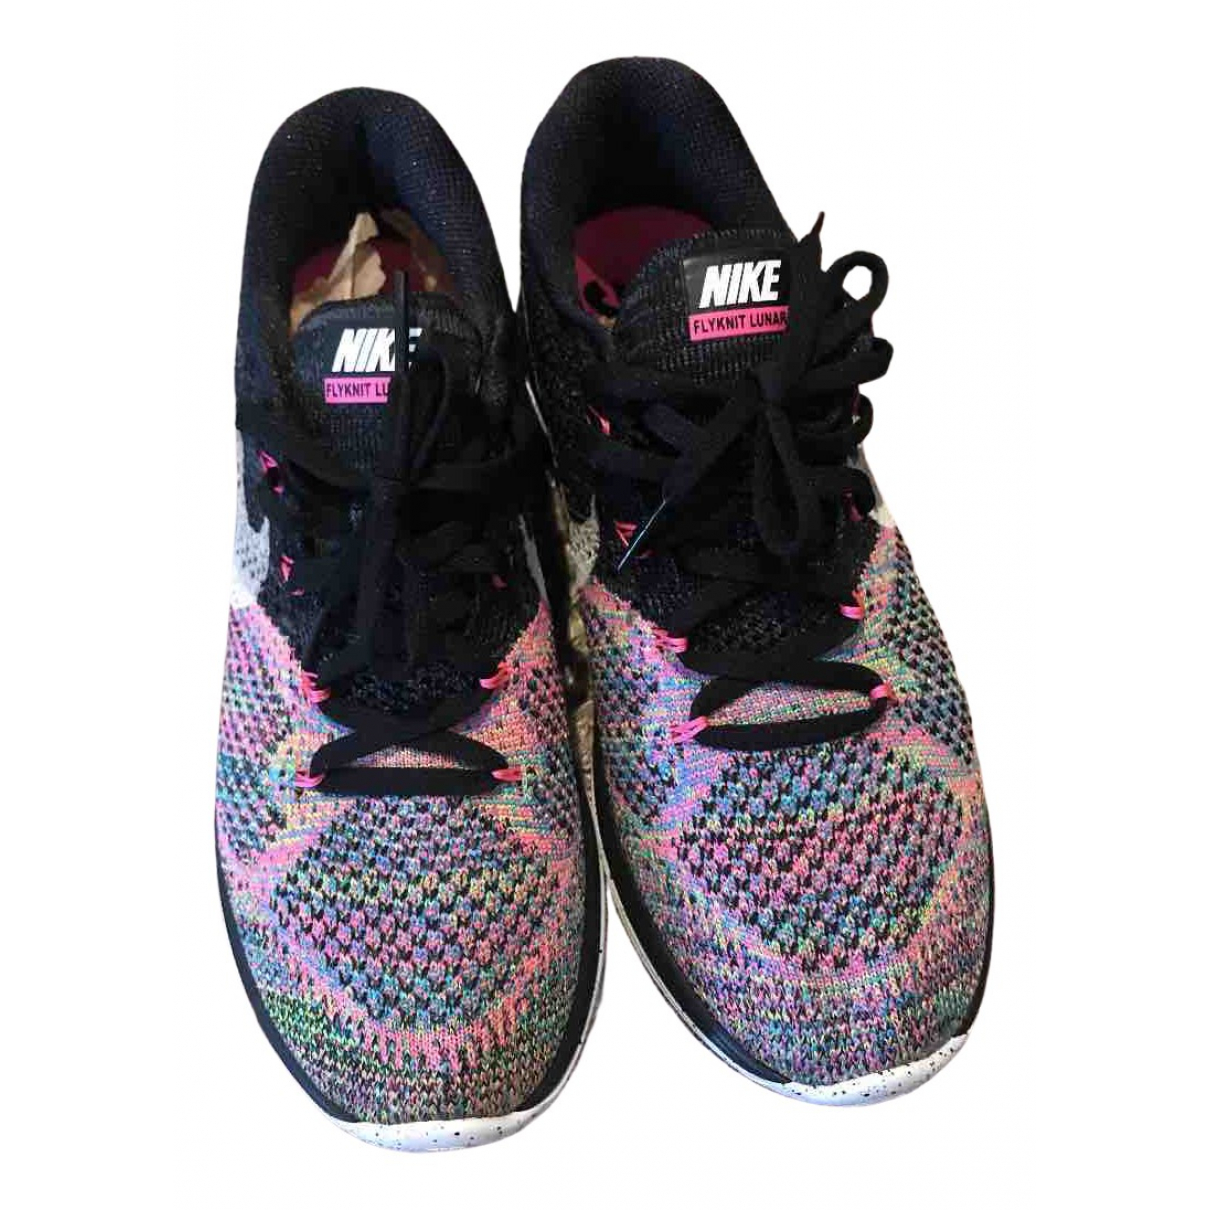 Nike Flyknit Racer Multicolour Cloth Trainers for Women 9 US